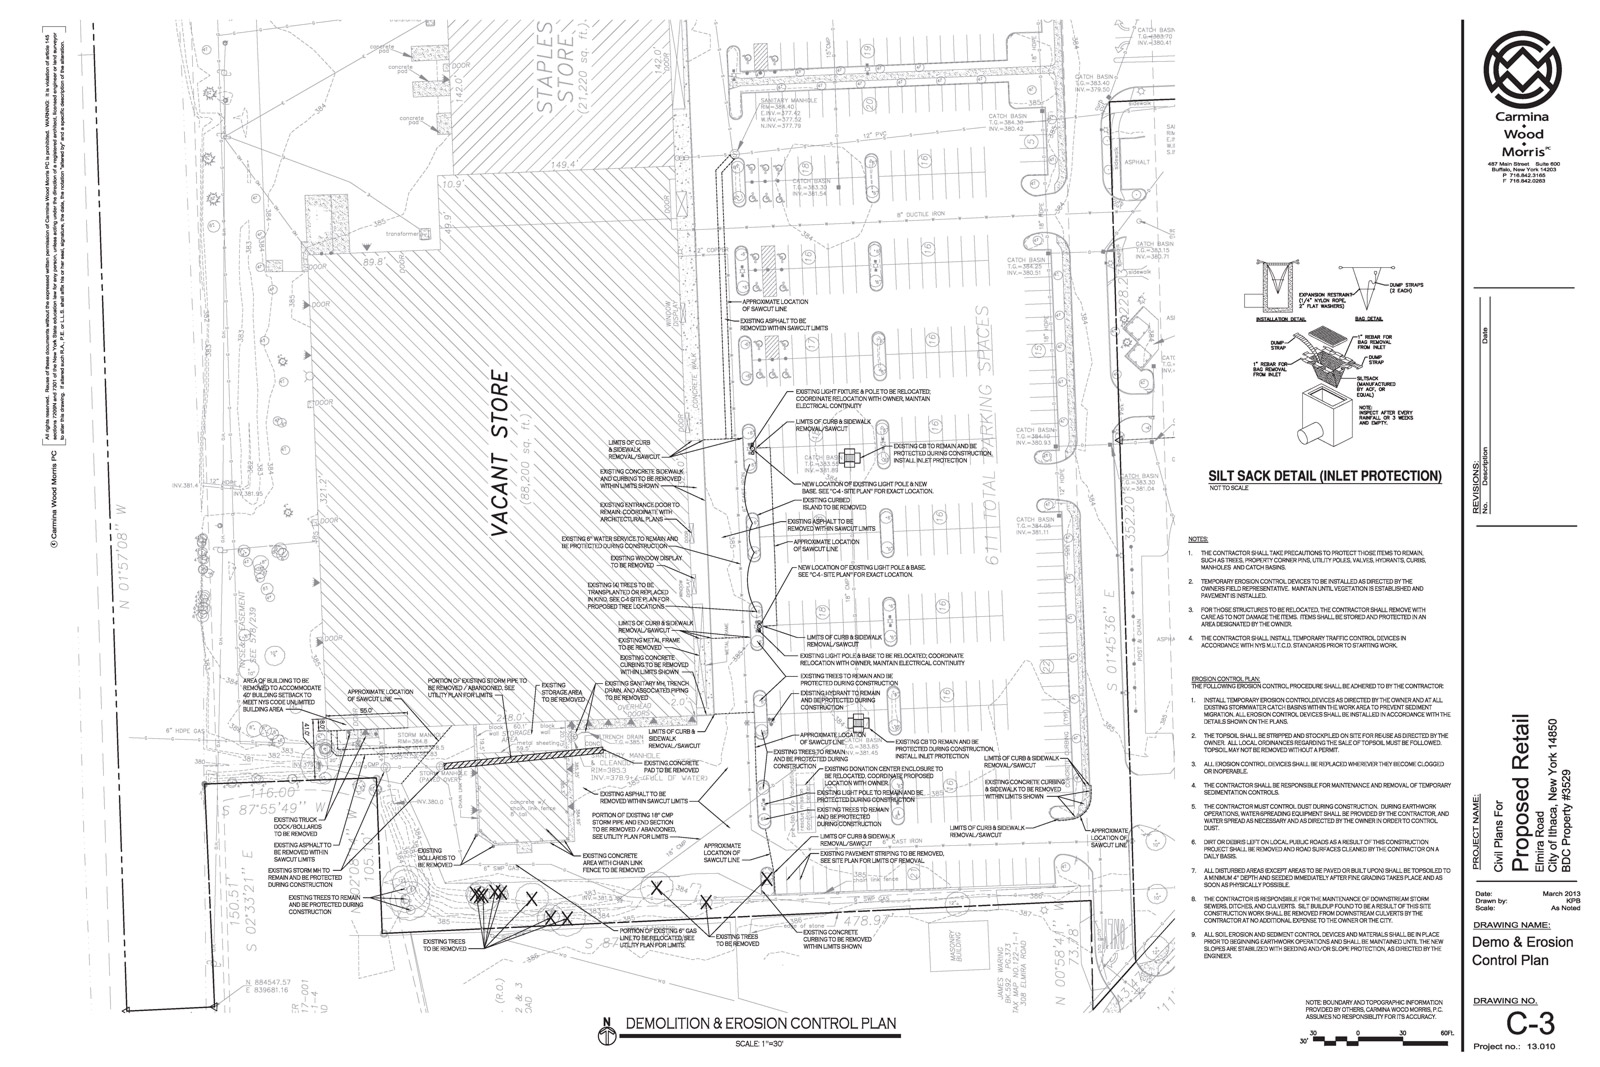 744-South-Meadow-Street---Marketplace-Expansion---Site-Development-Drawings---11-01-13-copy_Page_2